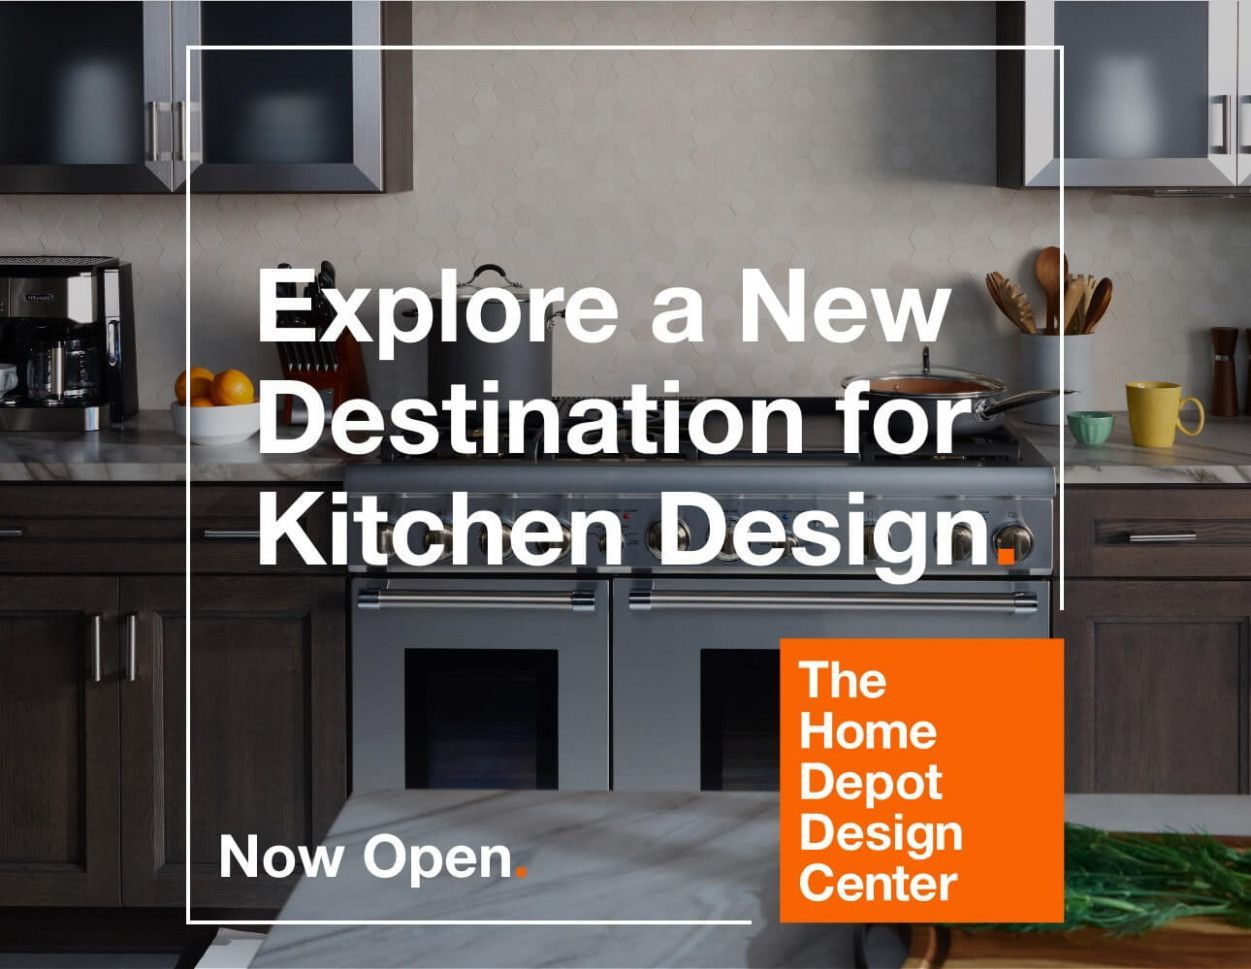 14 Design Of Home Depot Kitchen Cabinets Prices Boston Business Wire Compare The In 2020 Home Depot Kitchen Remodel Kitchen Cabinets Prices Kitchen Cabinet Design